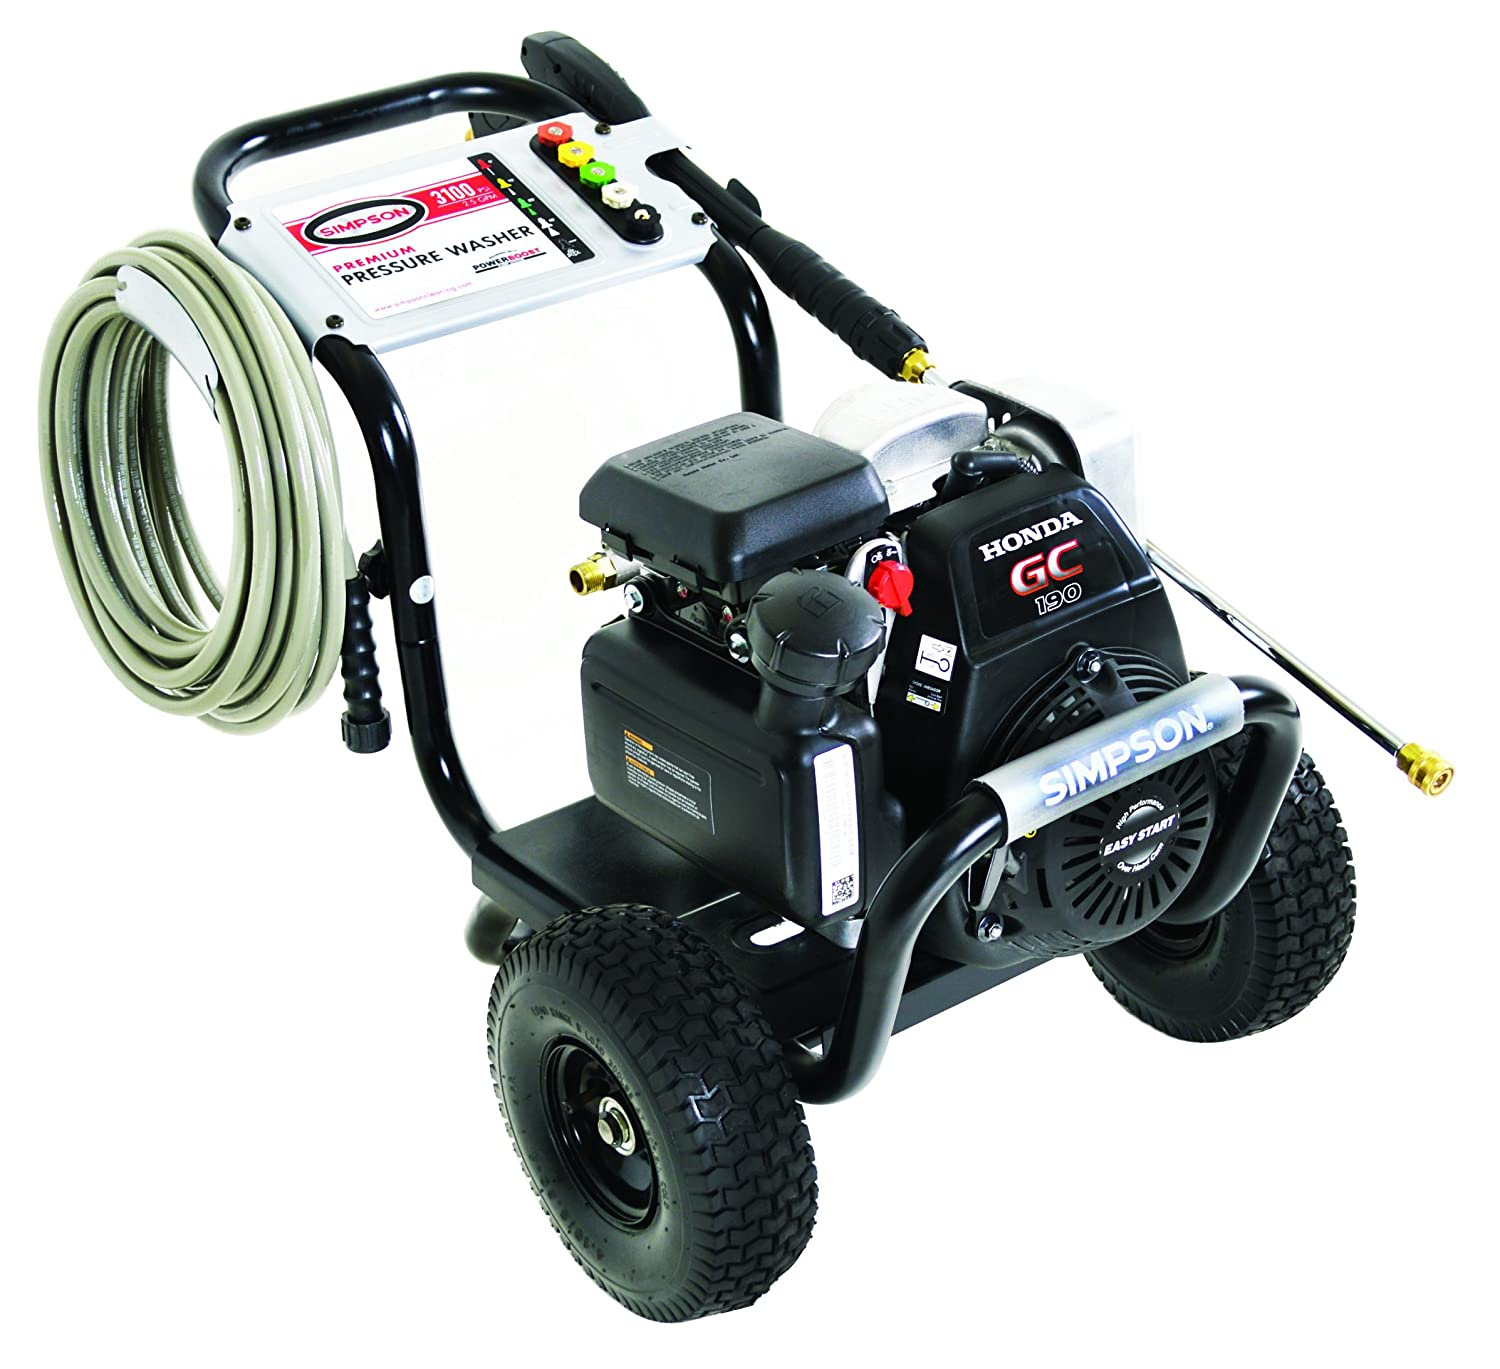 <strong>Best Gas Pressure Washer: </strong> <strong>The Simpson MSH3125-S MegaShot Gas Pressure Washer</strong>